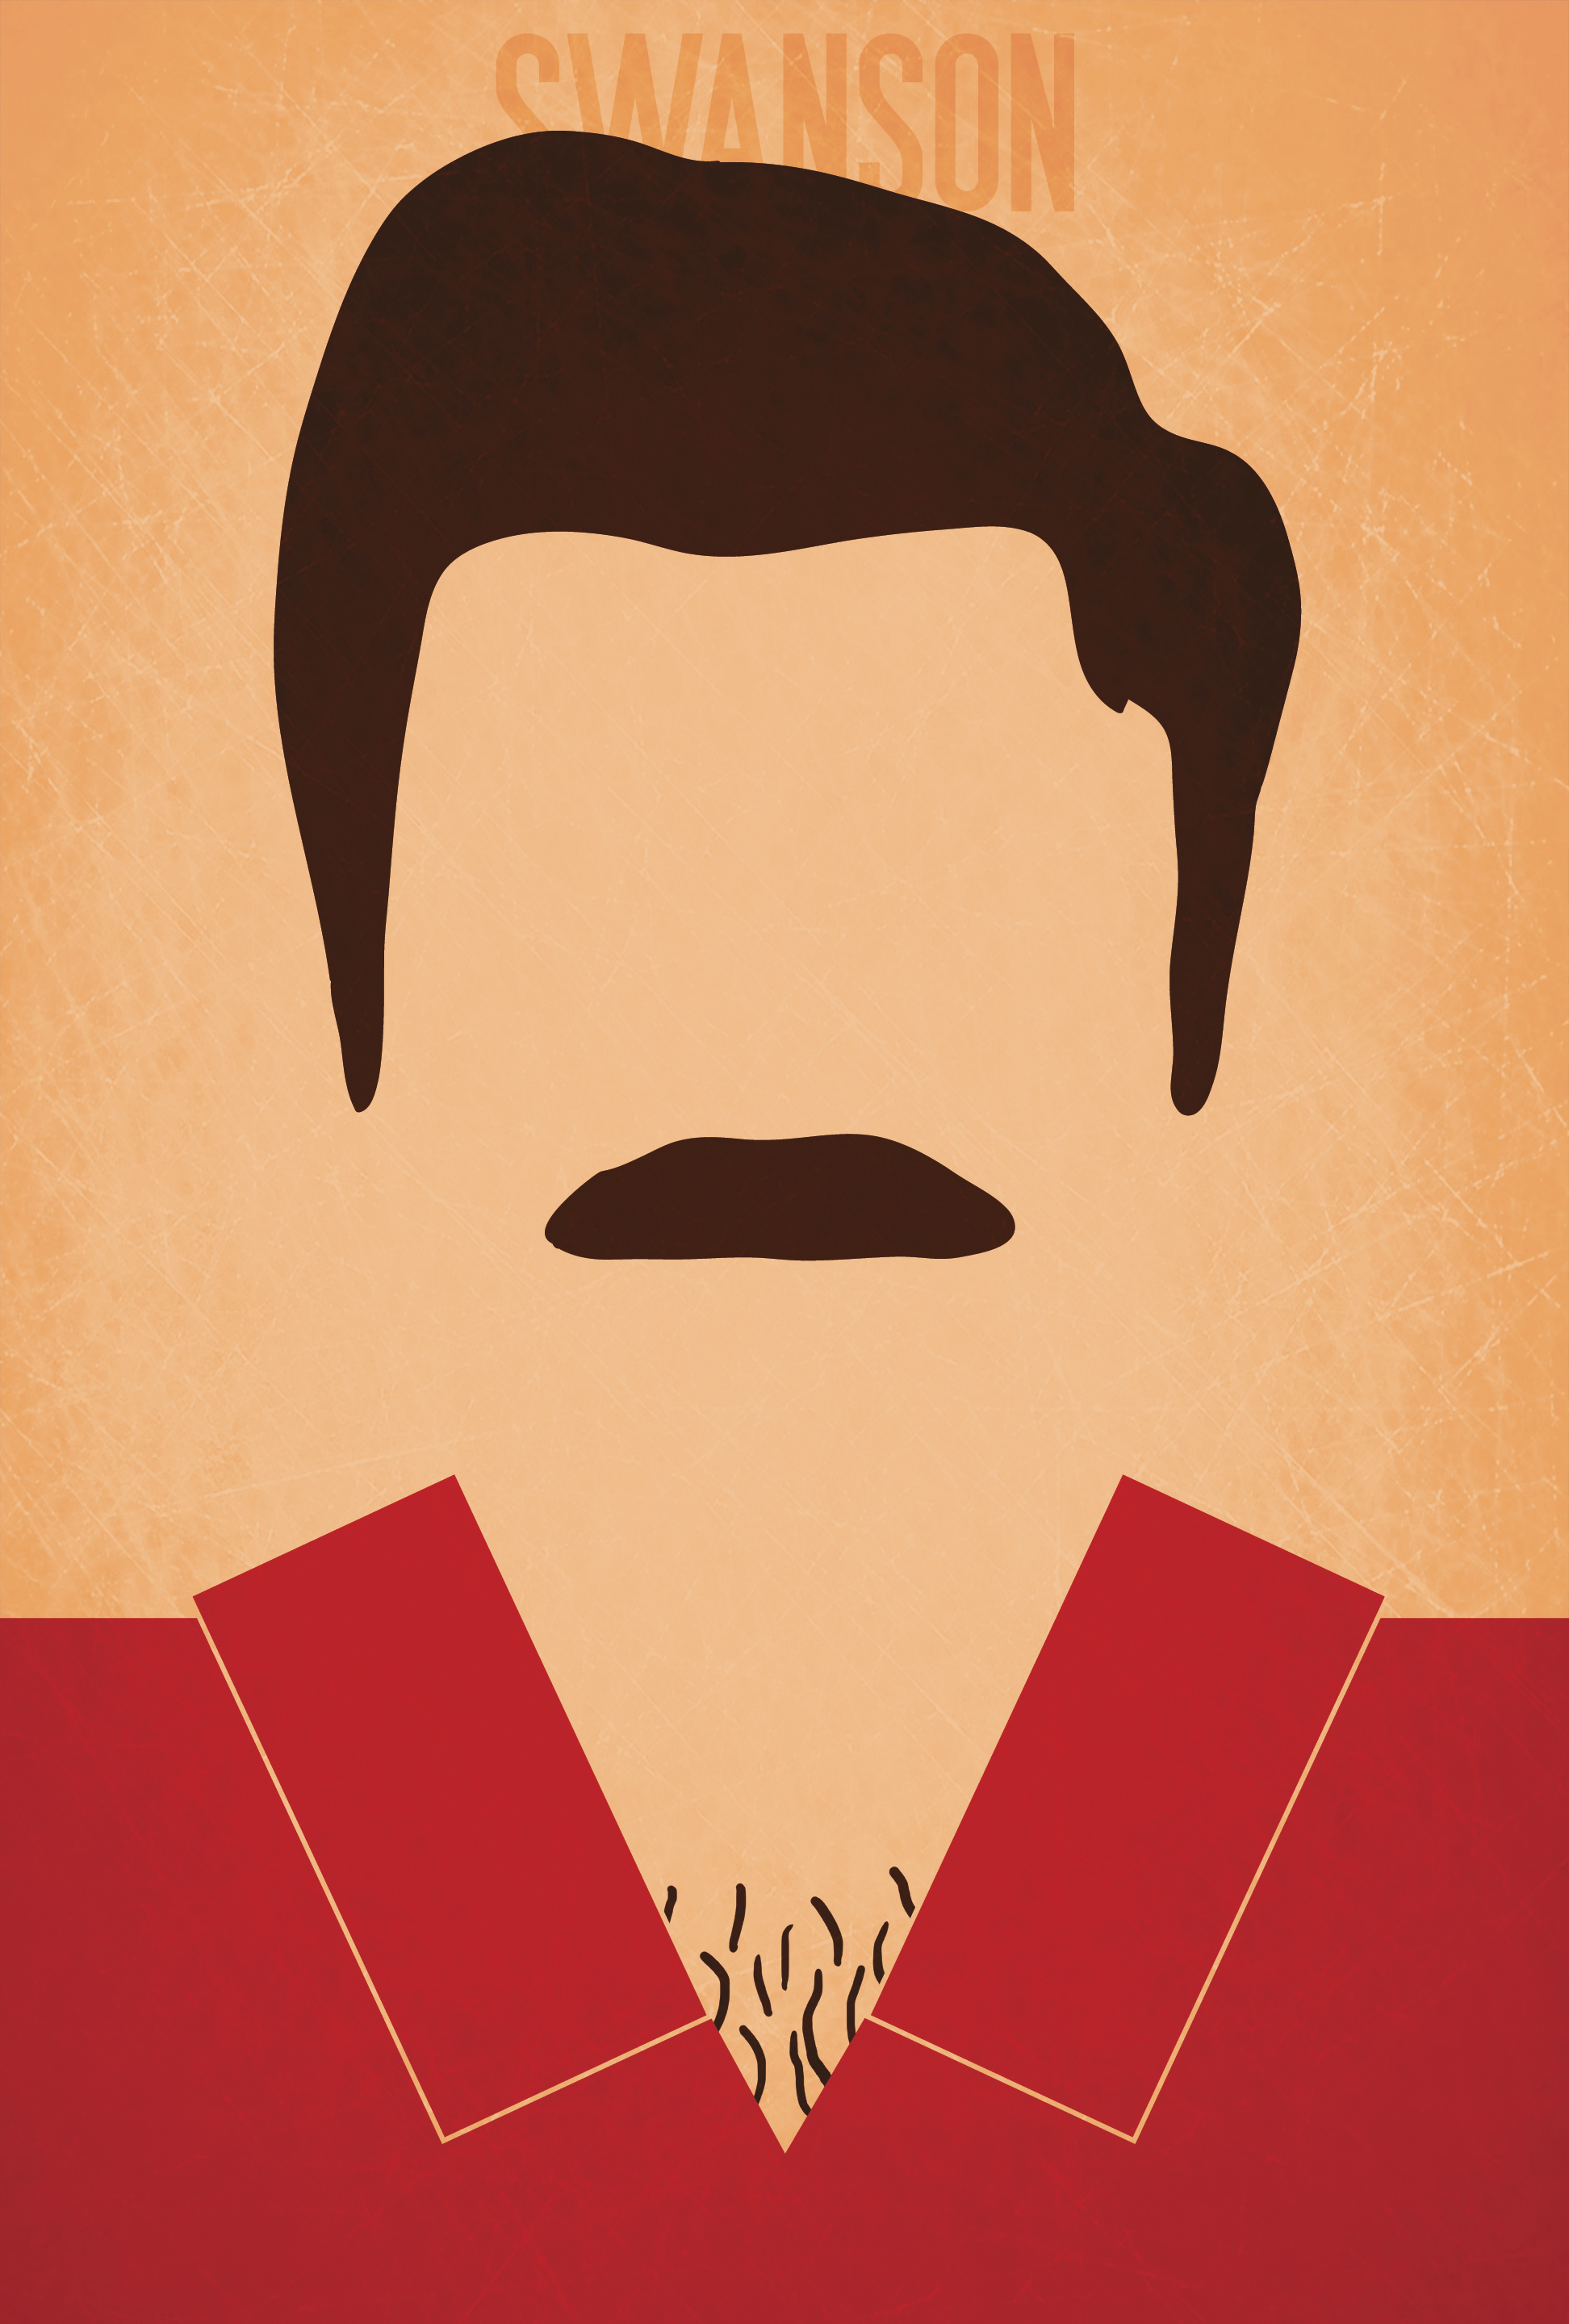 Minimalist Parks and Recreation Posters | Jason Yingling